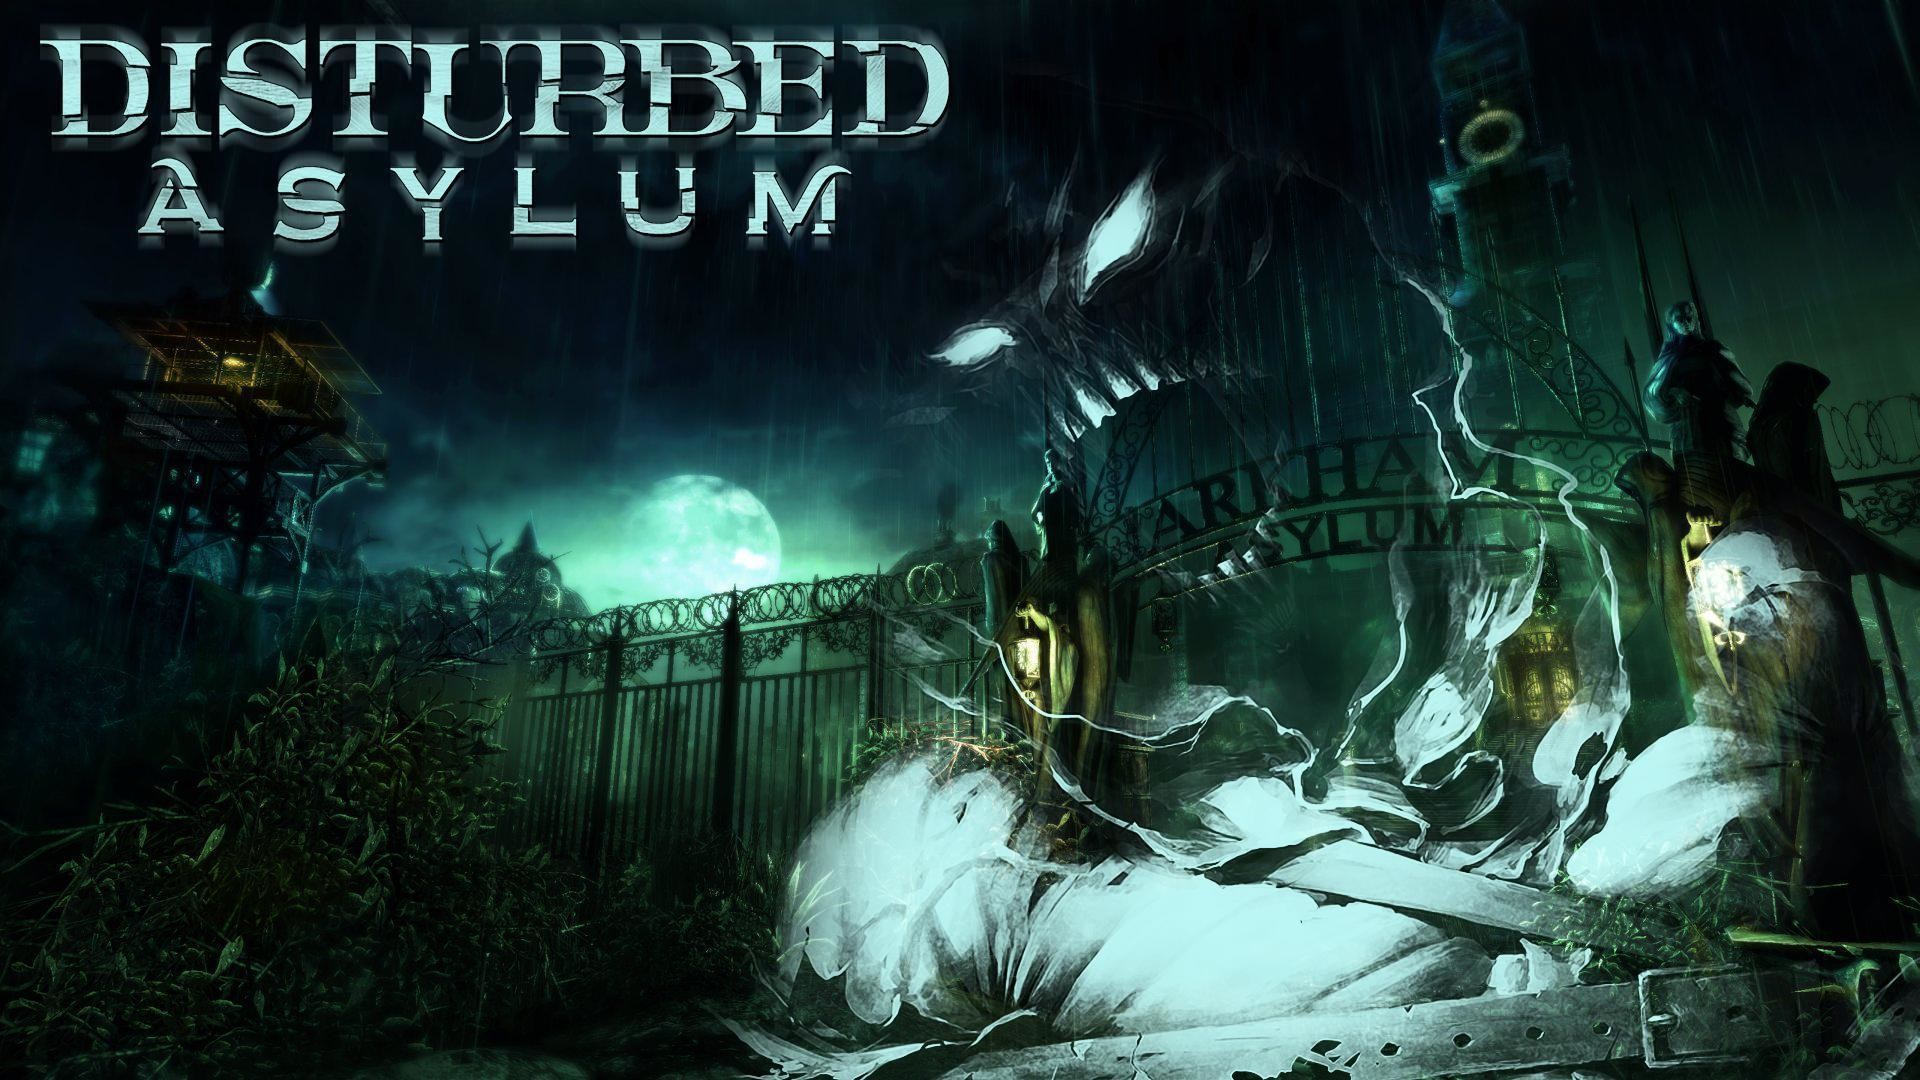 Disturbed The Guy Wallpaper Asylum – wallpaper.